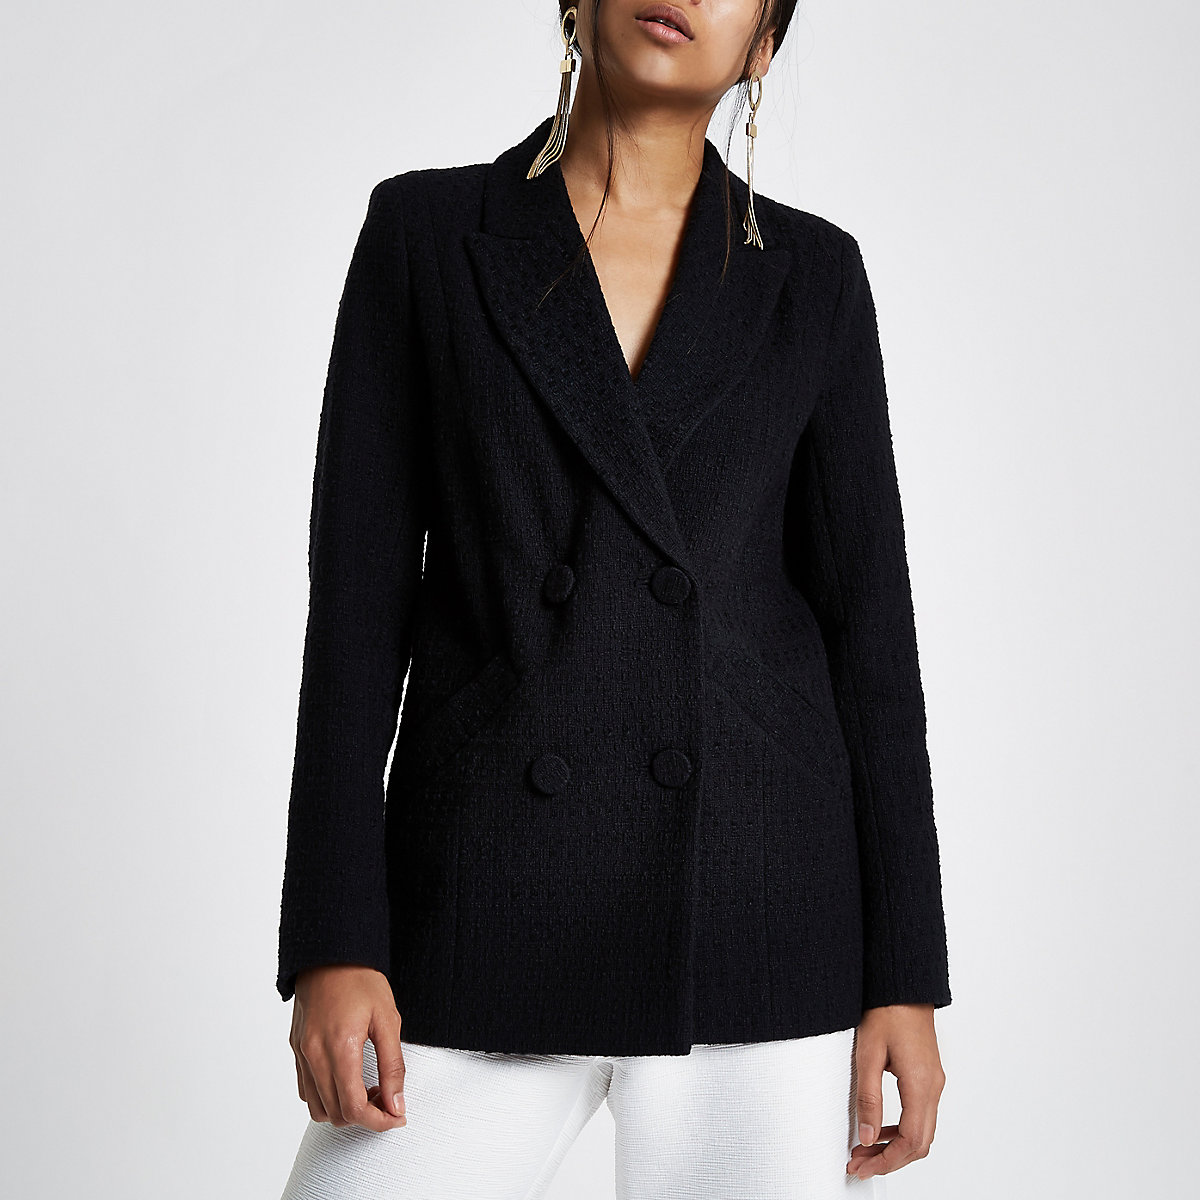 Petite black textured double breasted blazer